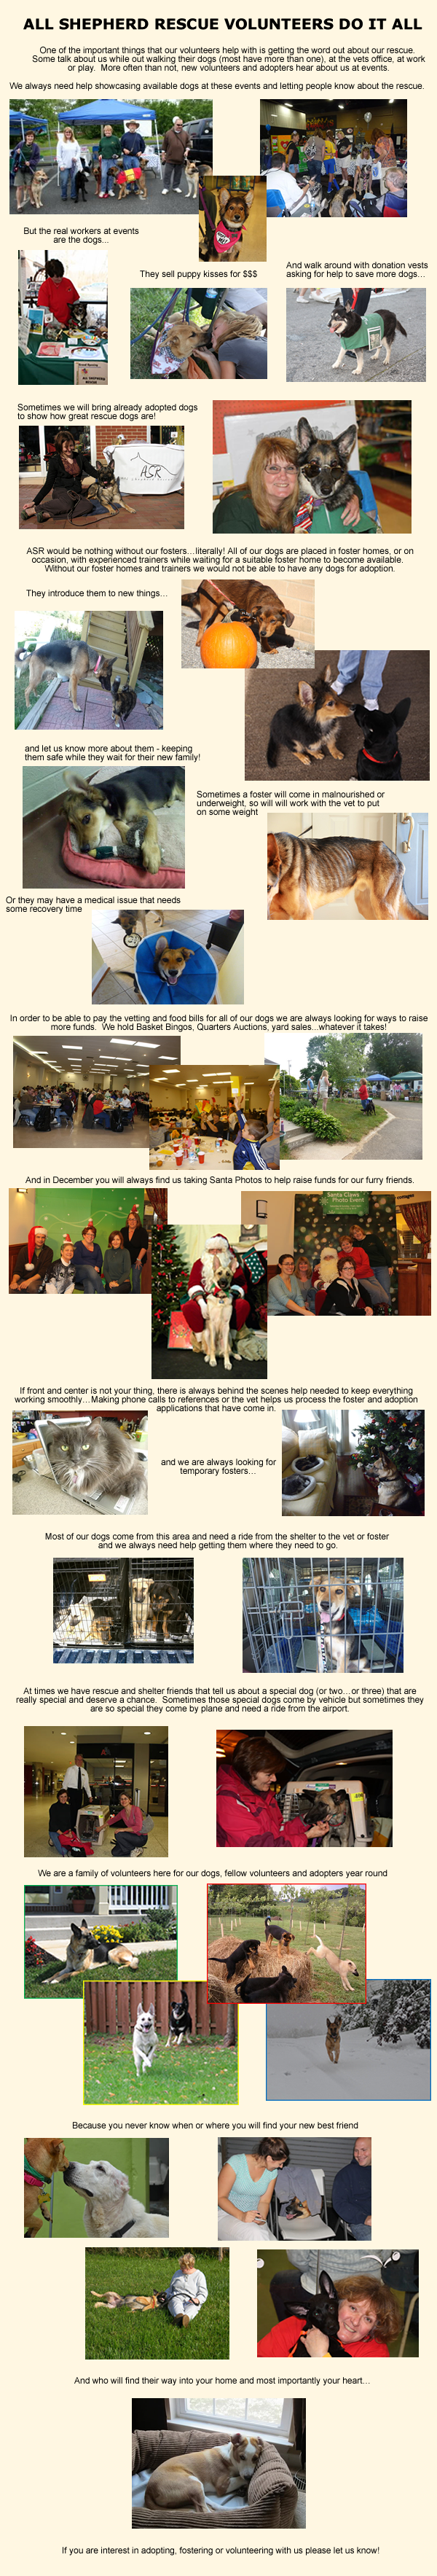 Web Image: Volunteer Collage